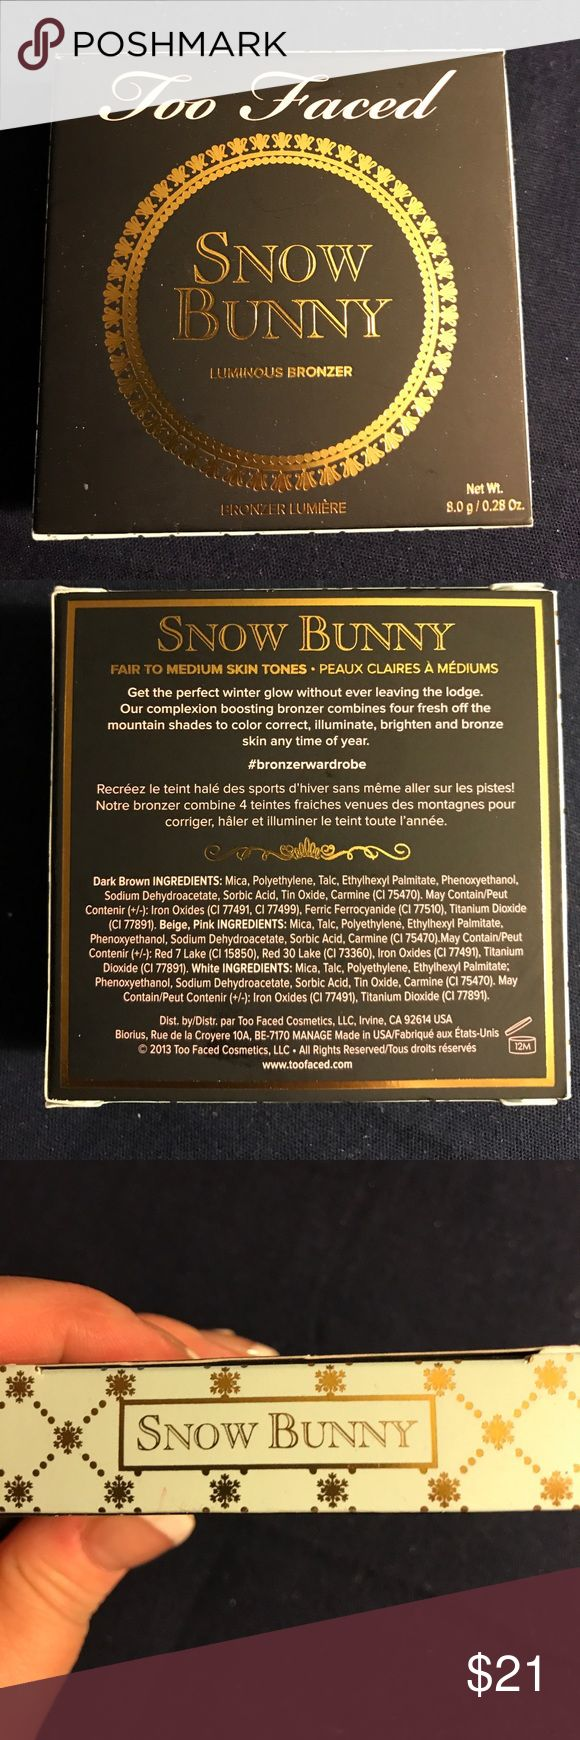 Too Faced Snow Bunny Luminous Bronzer Brand new, unopened, full size Snow Bunny bronzer NO TRADES Too Faced Makeup Bronzer